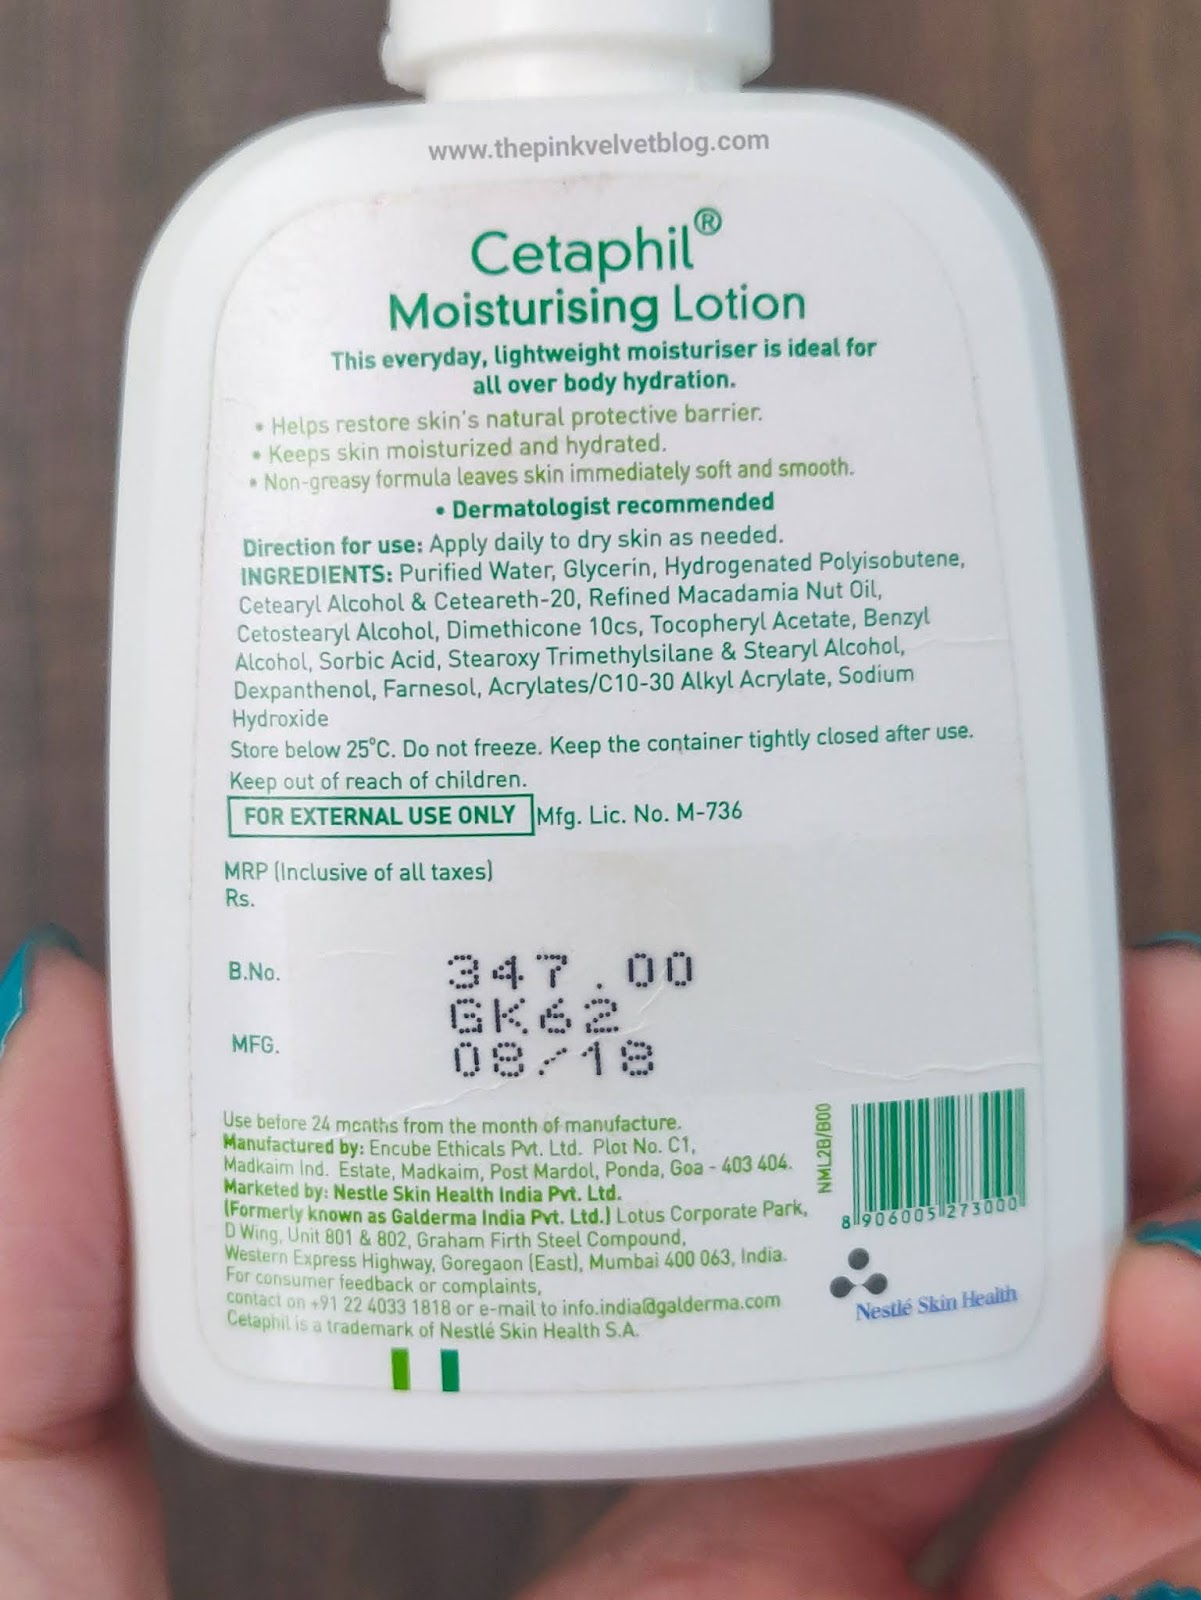 Cetaphil Moisturizing Lotion for Dry and Sensitive Skin - Review - Ingredients